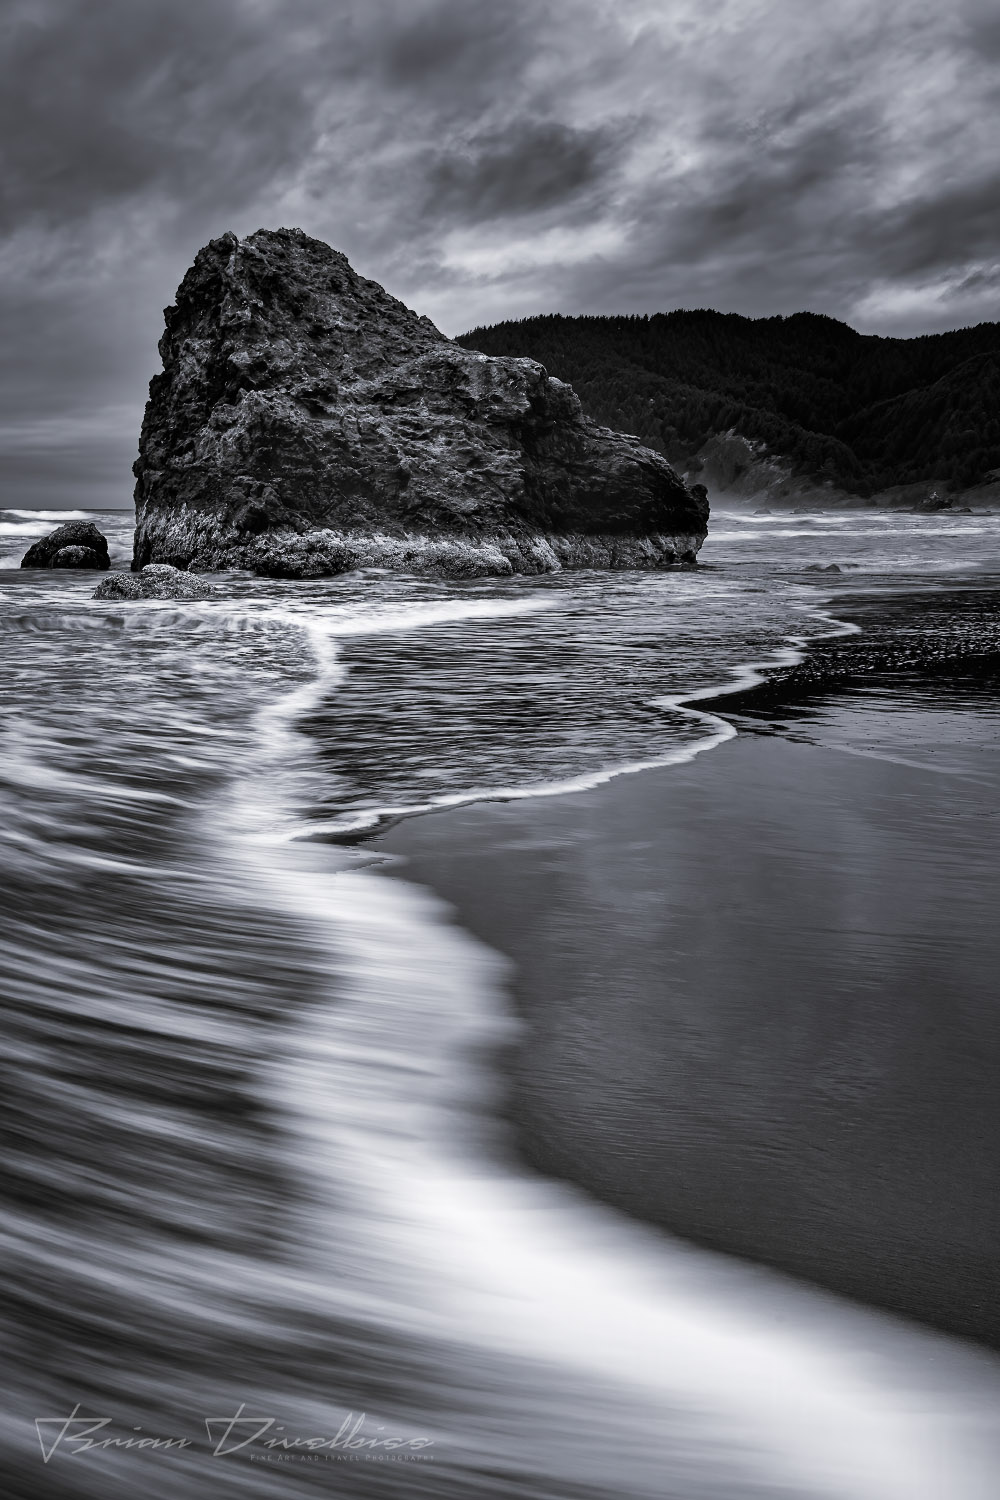 Water surrounds seastacks on the beach in Southern Oregon in black and white.